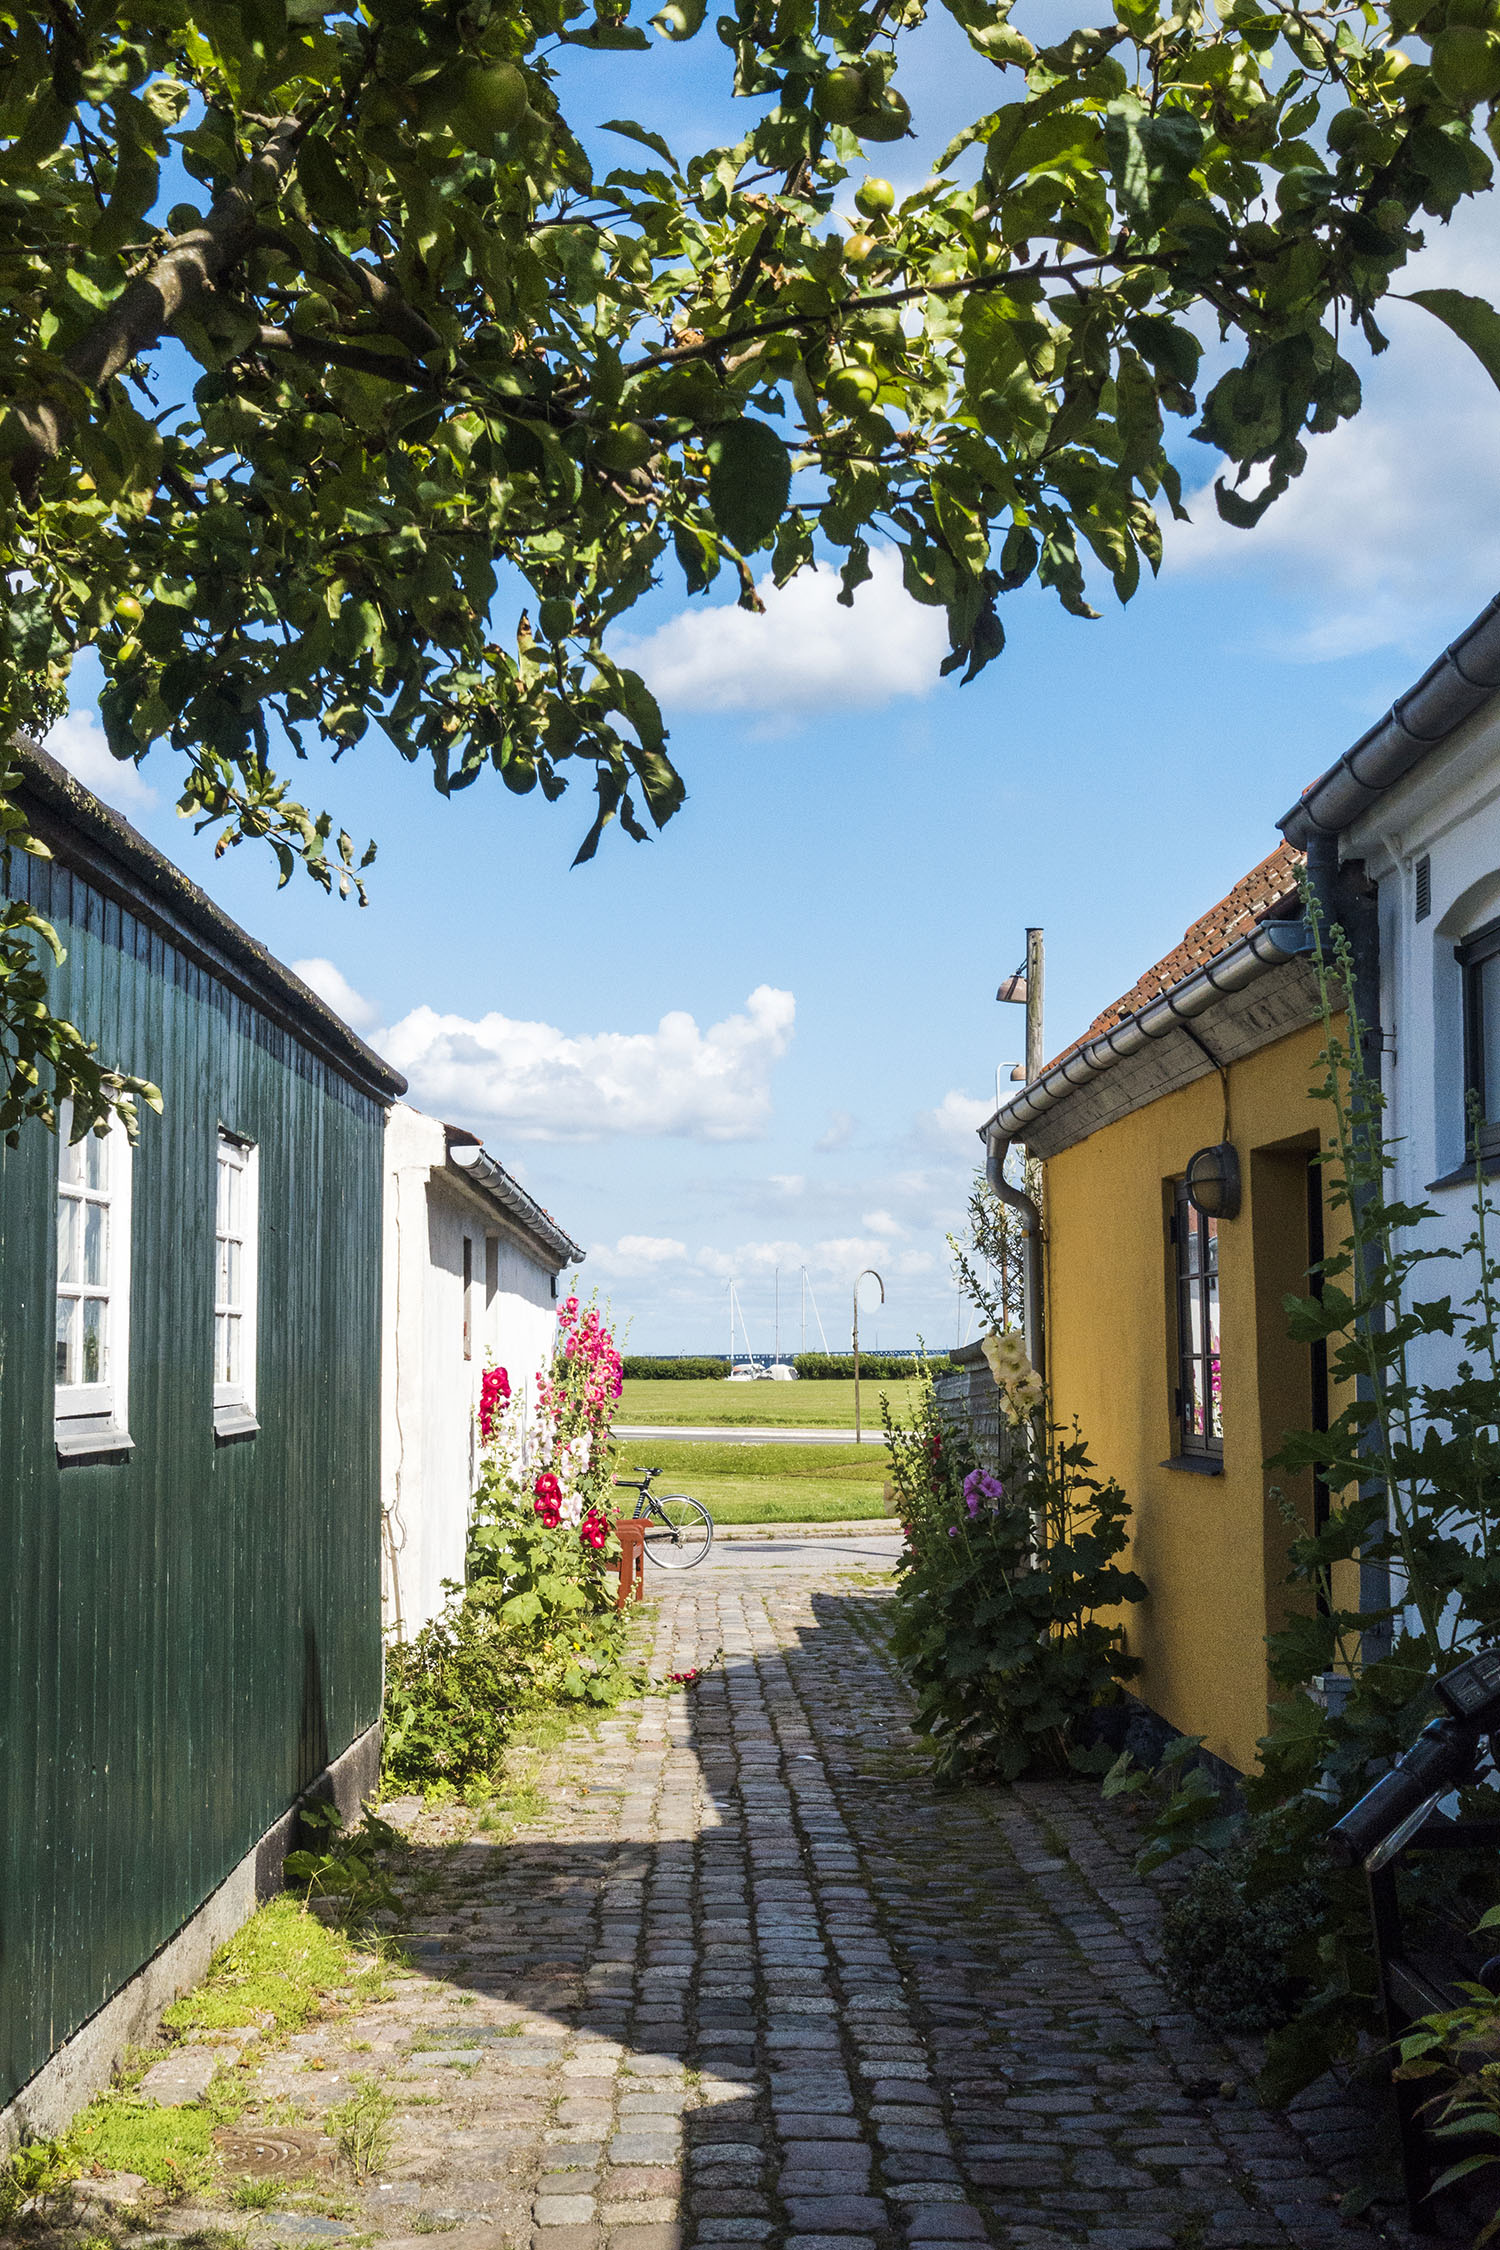 Dragør_130717_HelenaLundquist_7.small